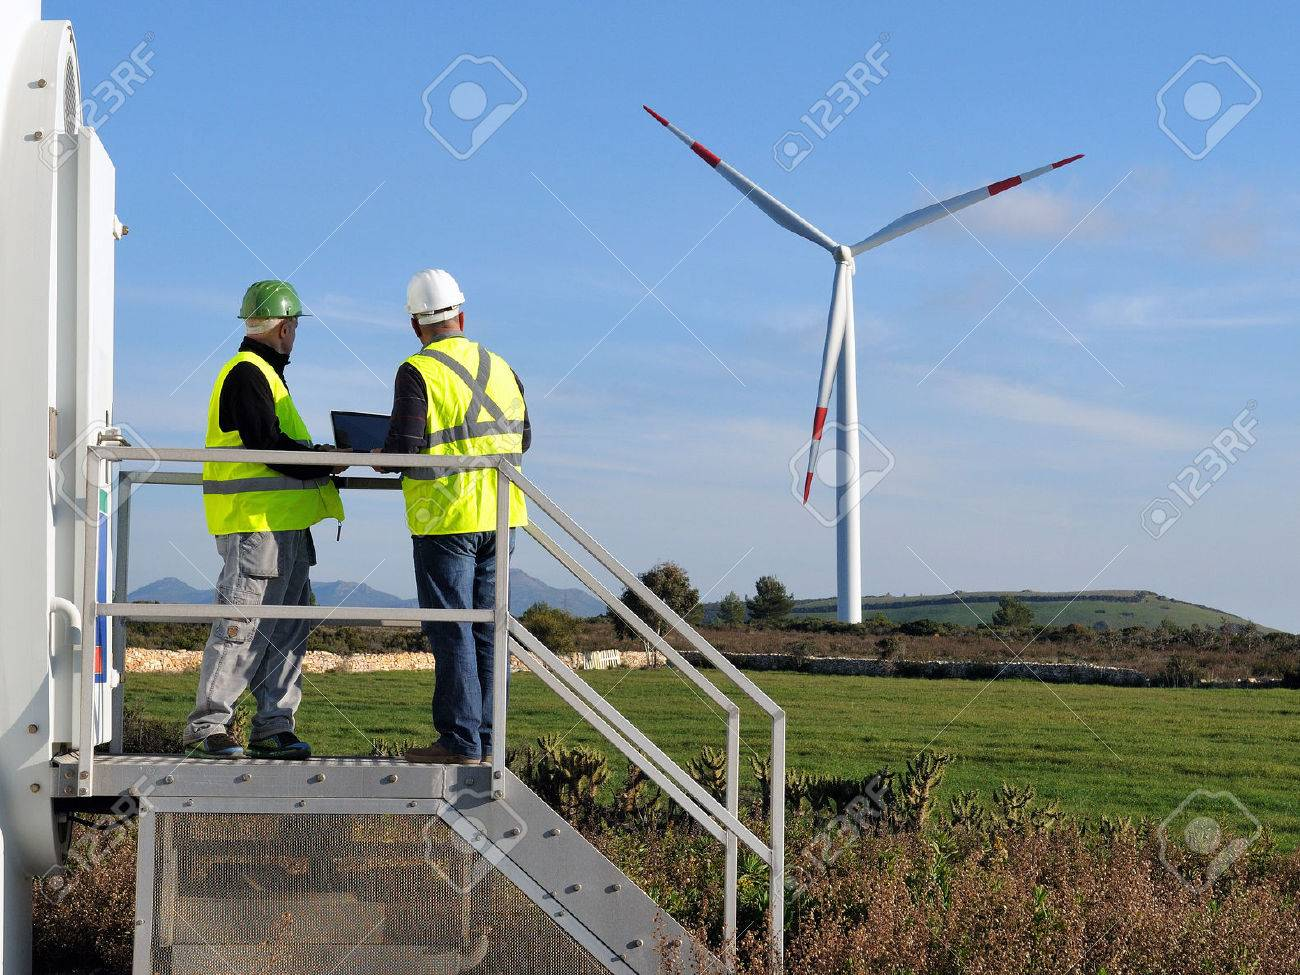 Technicians engaged in the detecting of a wind turbine installation for the production of energy - 52184838